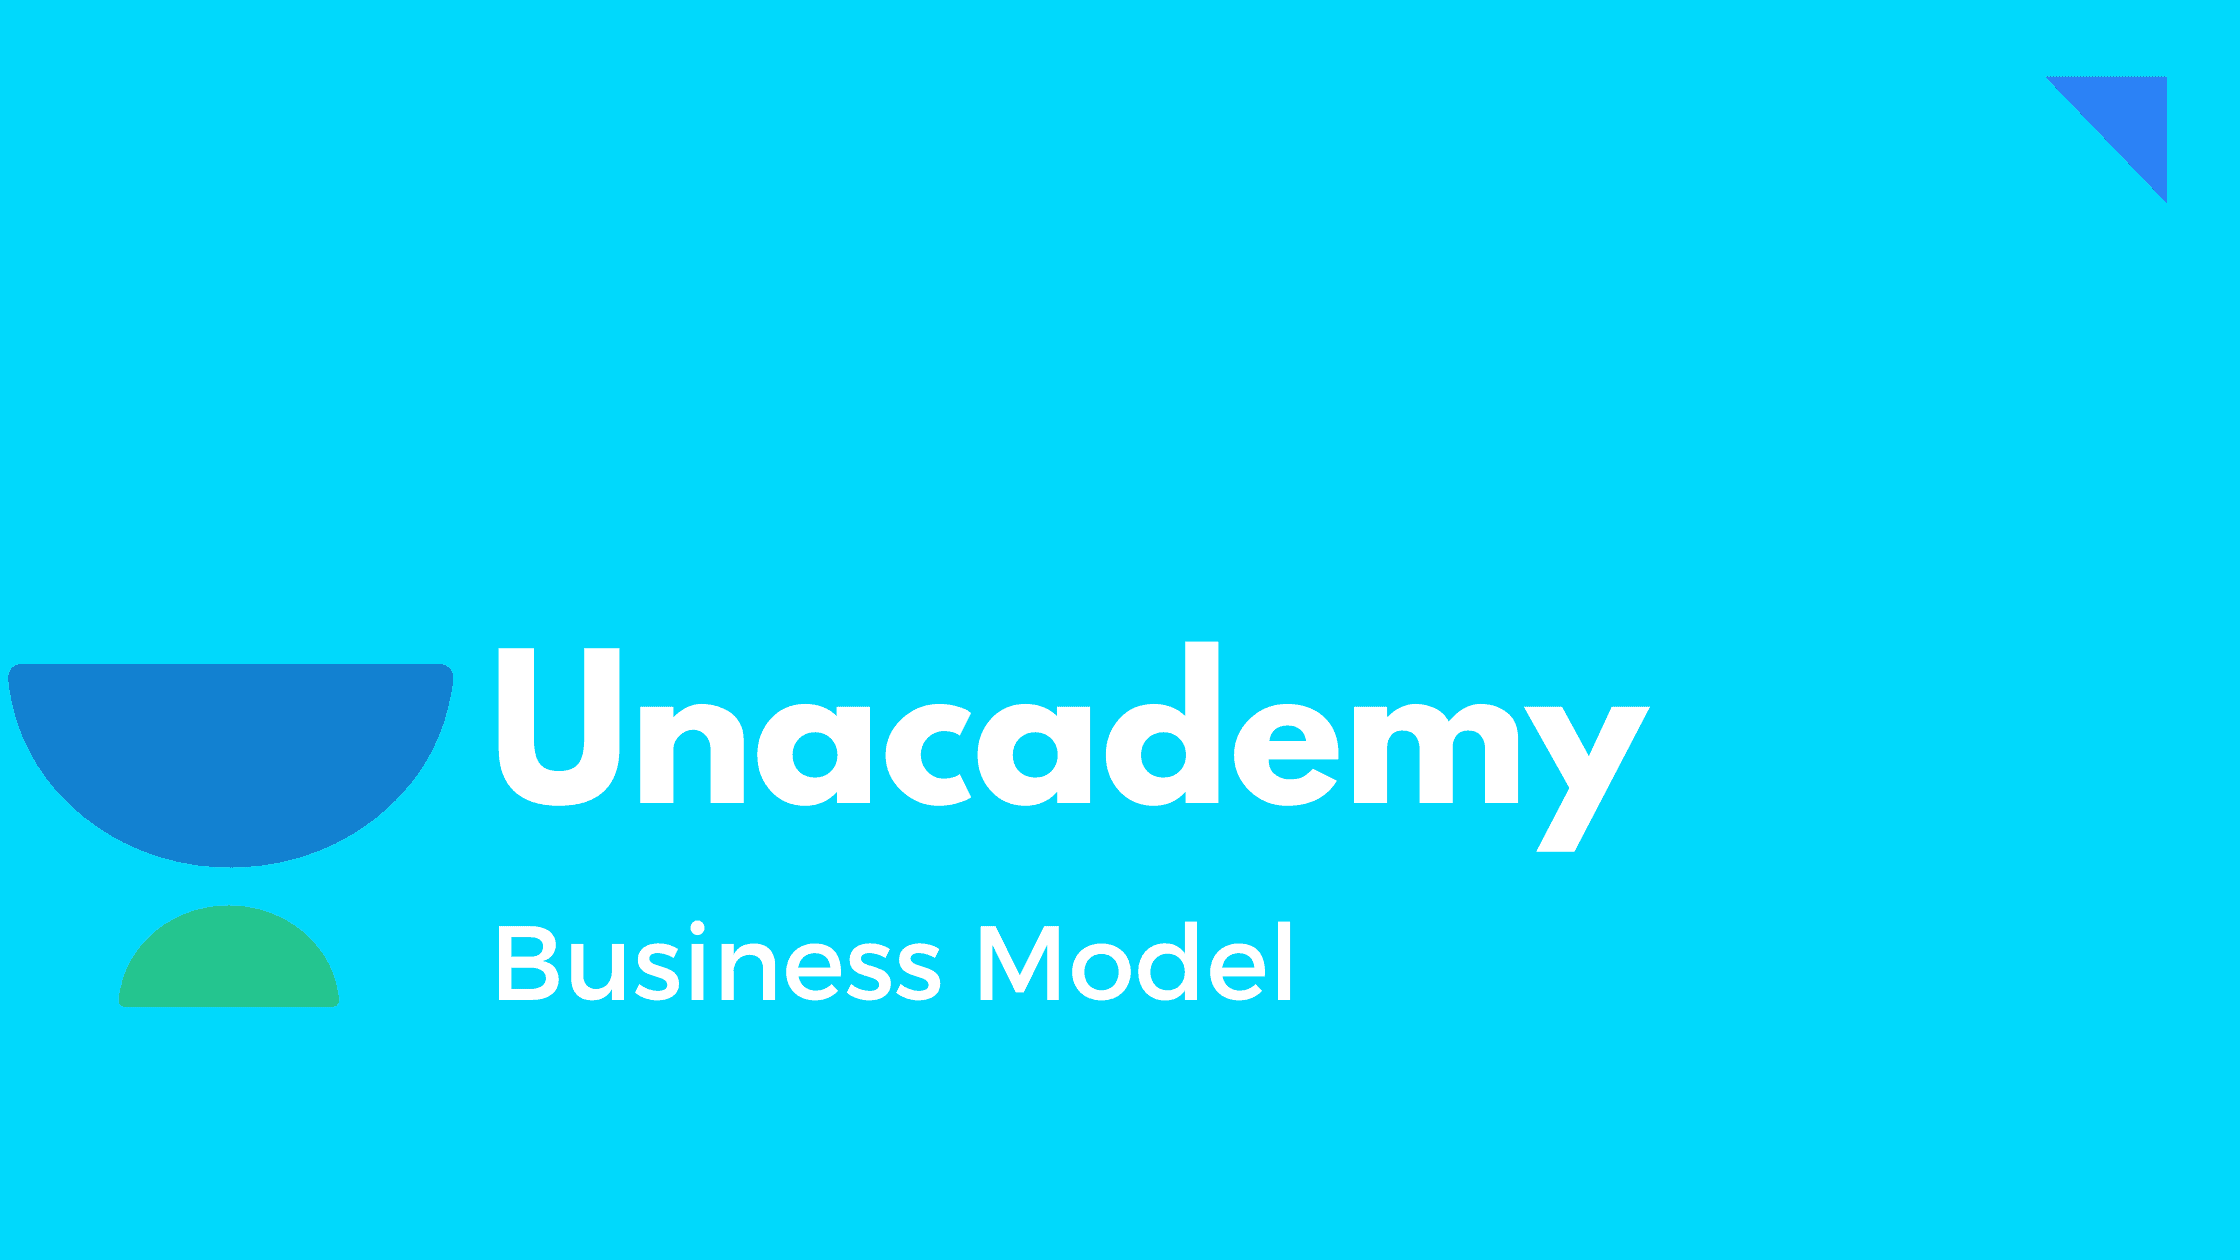 Unacademy Business Model - Featured Image